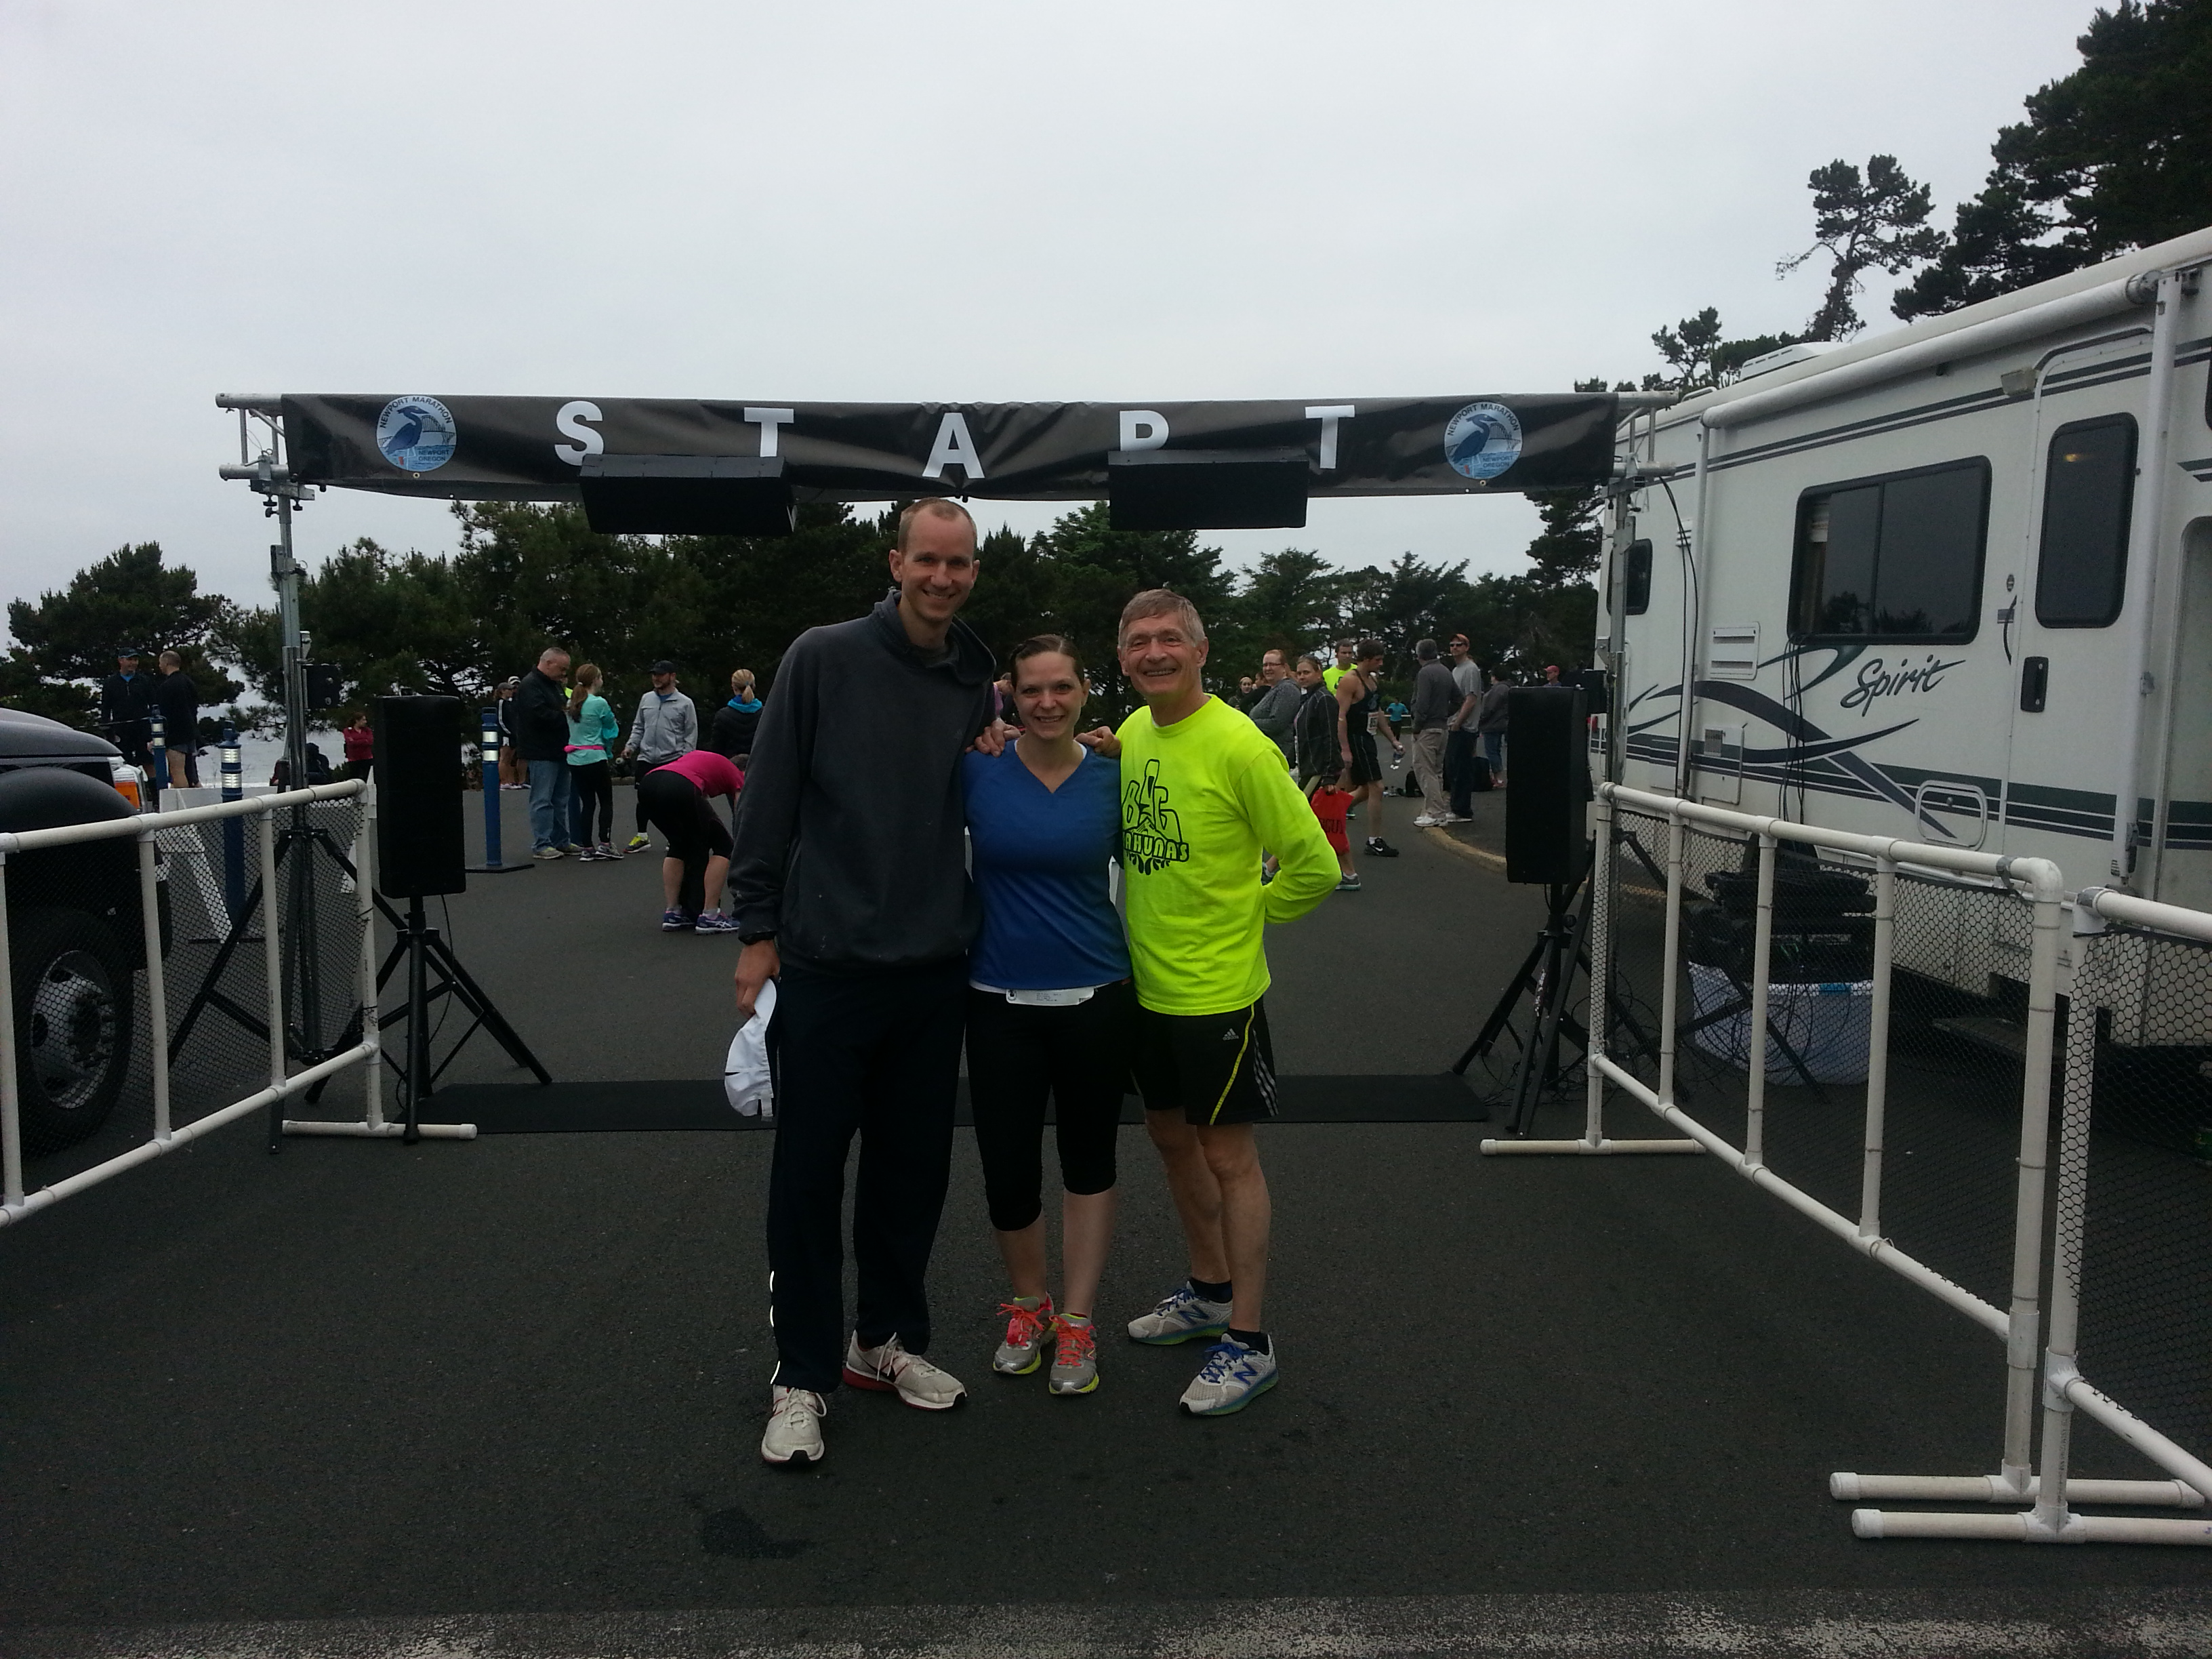 In front of the Newport Marathon starting line with Jerry and Kara